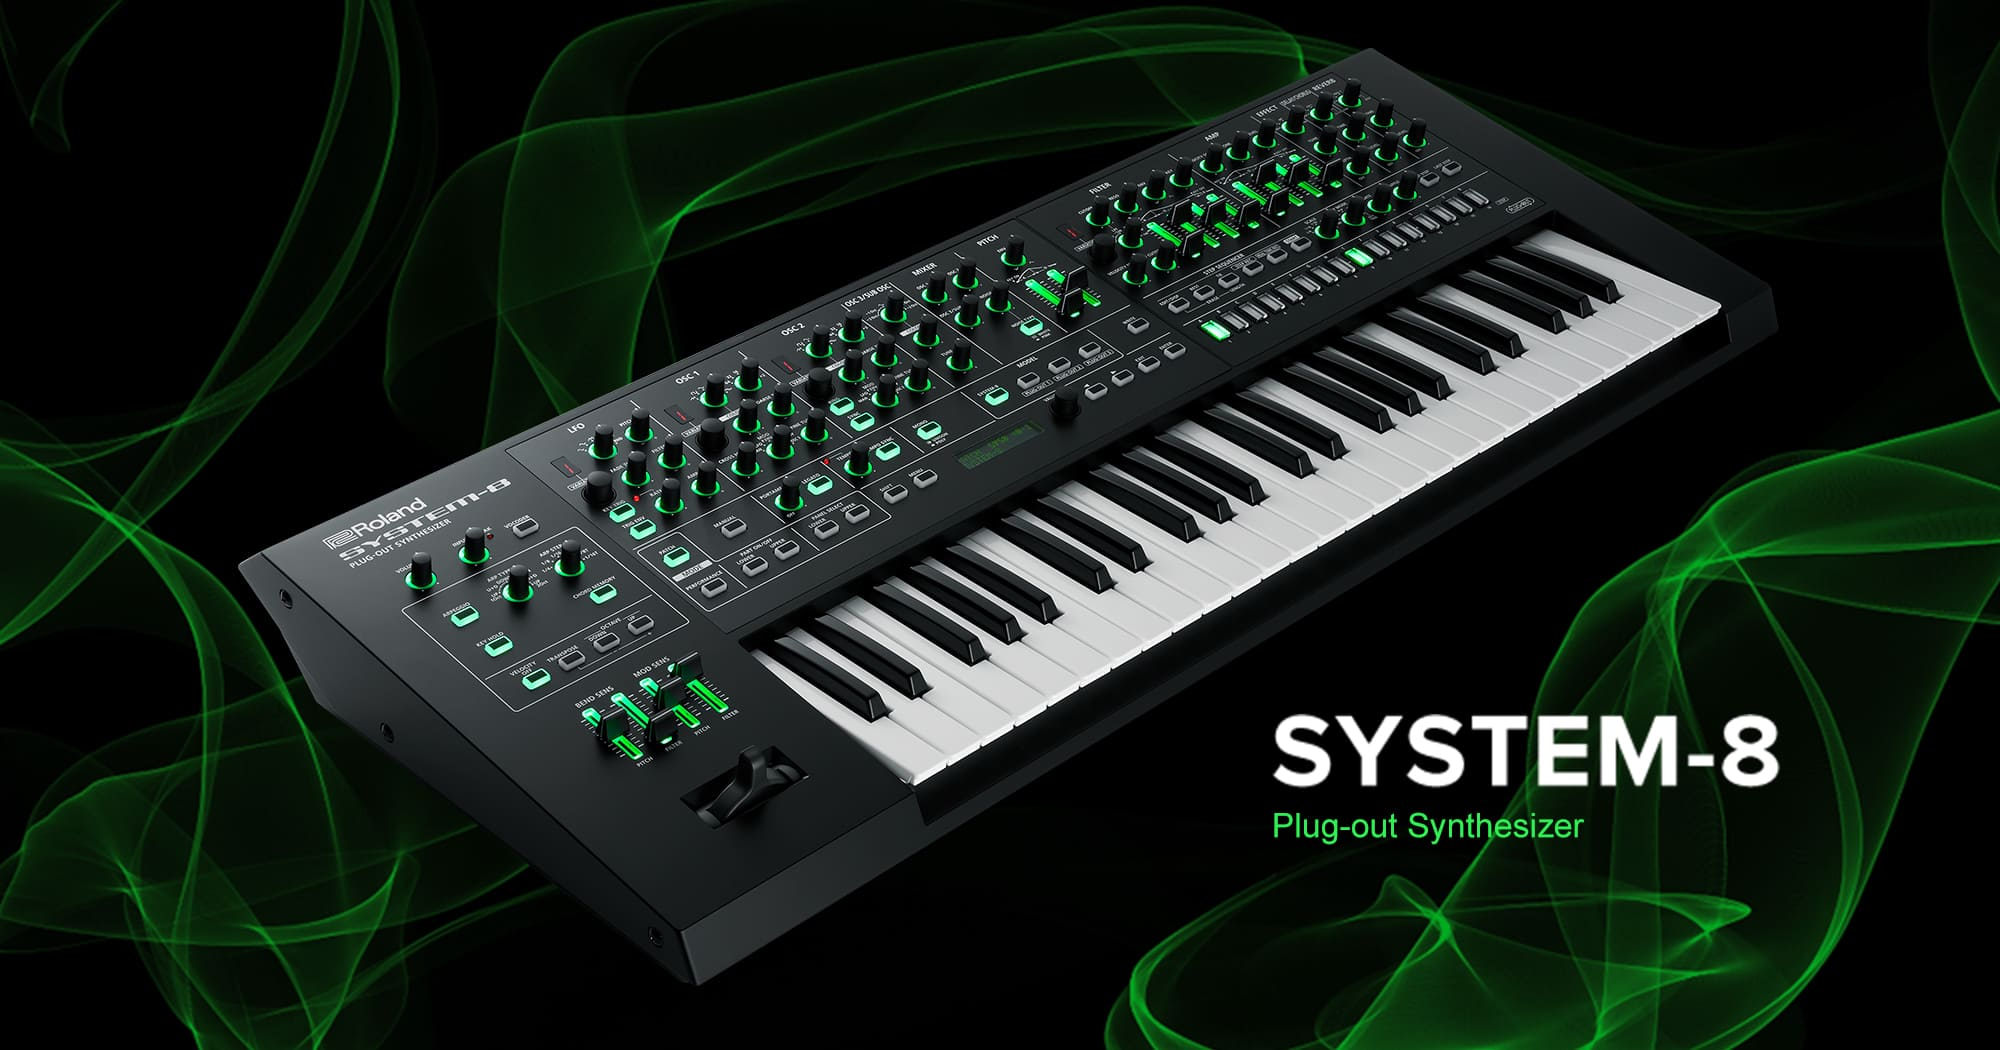 SYSTEM-8 Plug-out Synthesizer